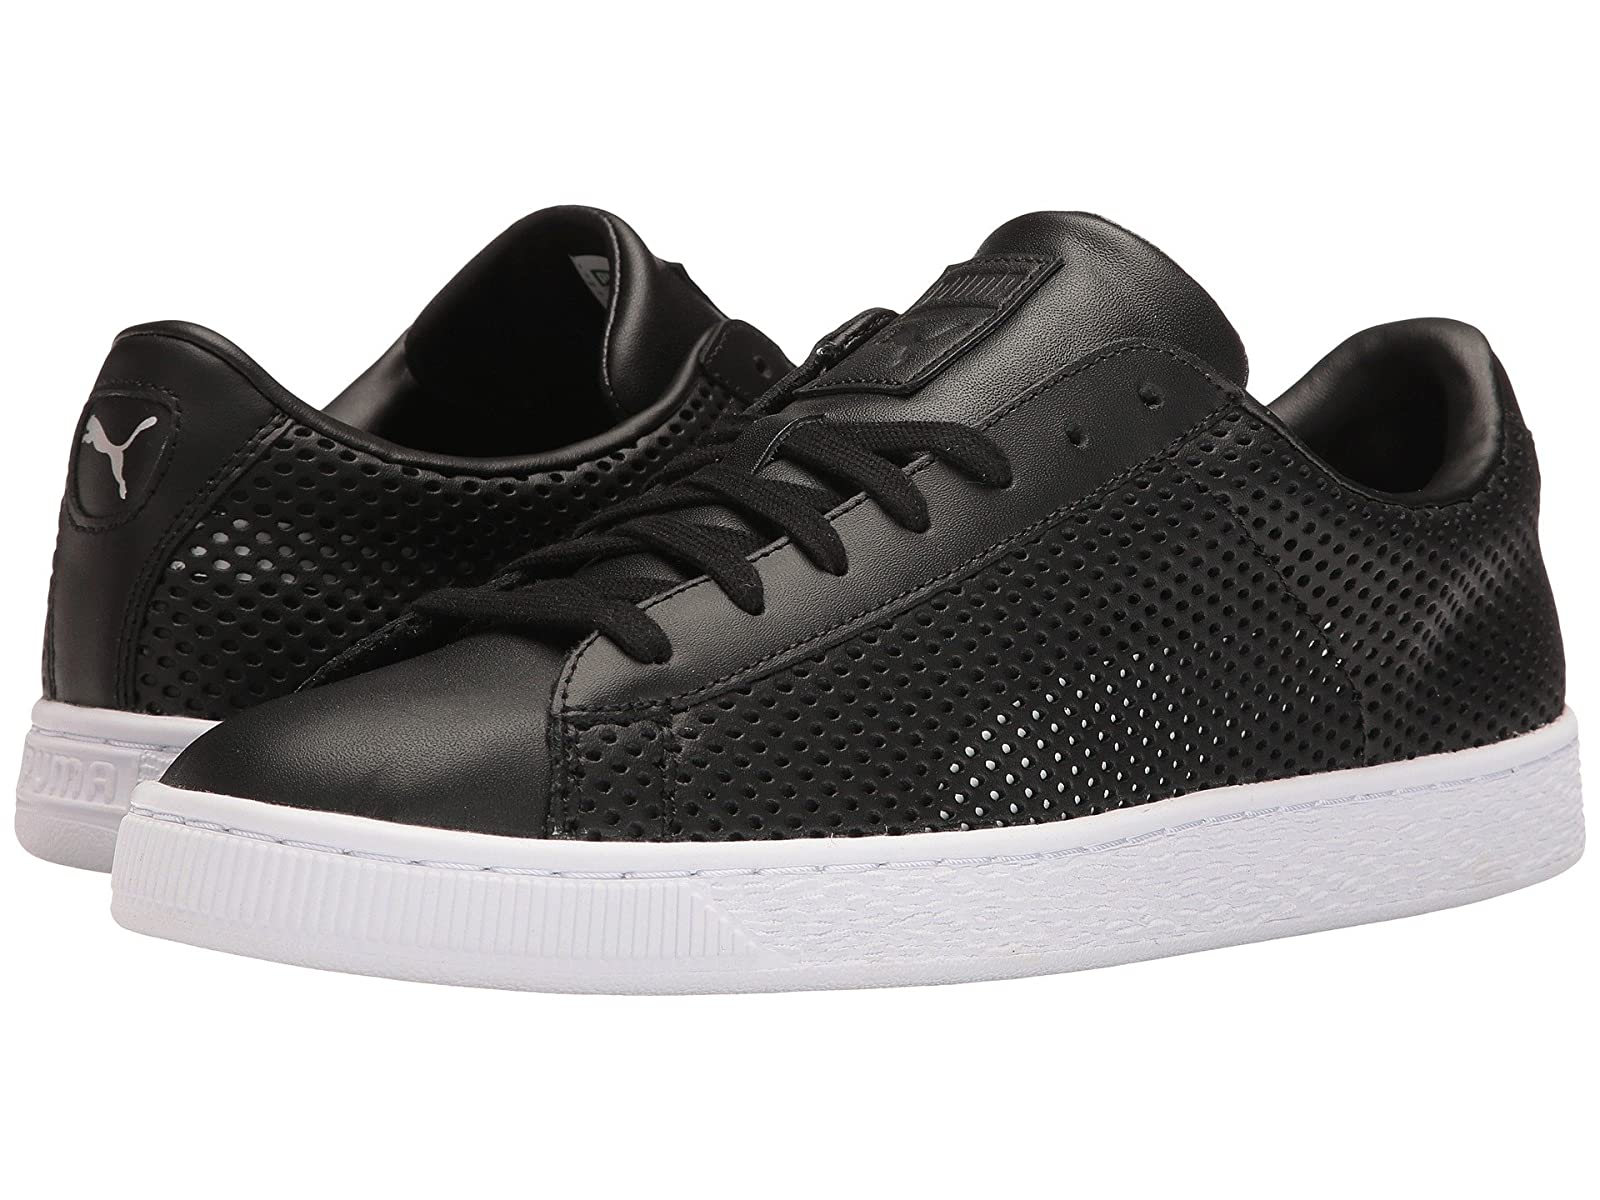 PUMA Basket Classic Summer ShadeCheap and distinctive eye-catching shoes